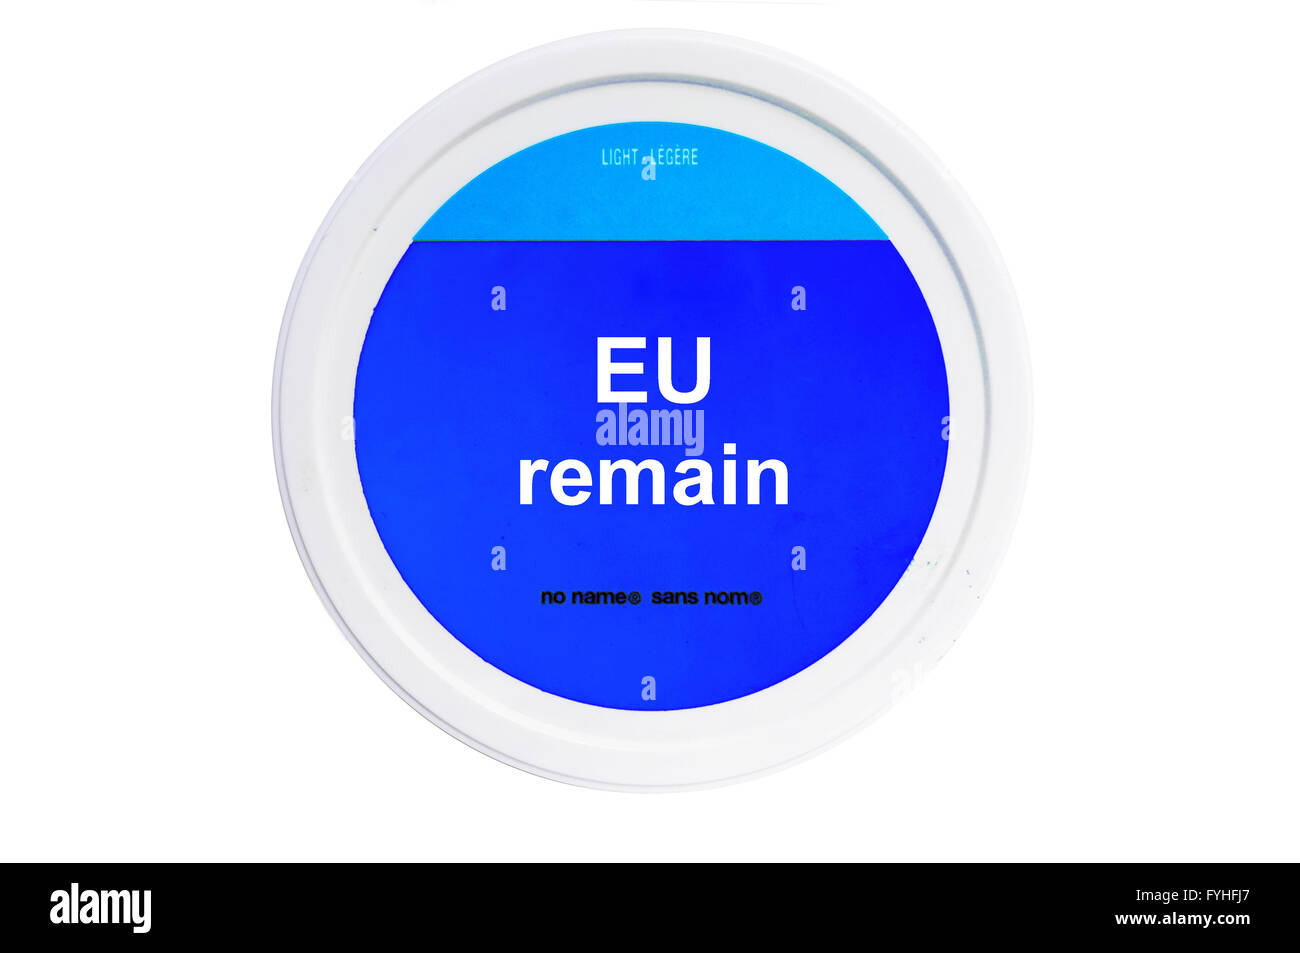 A tub with EU remain written on the label photographed against a white background. - Stock Image